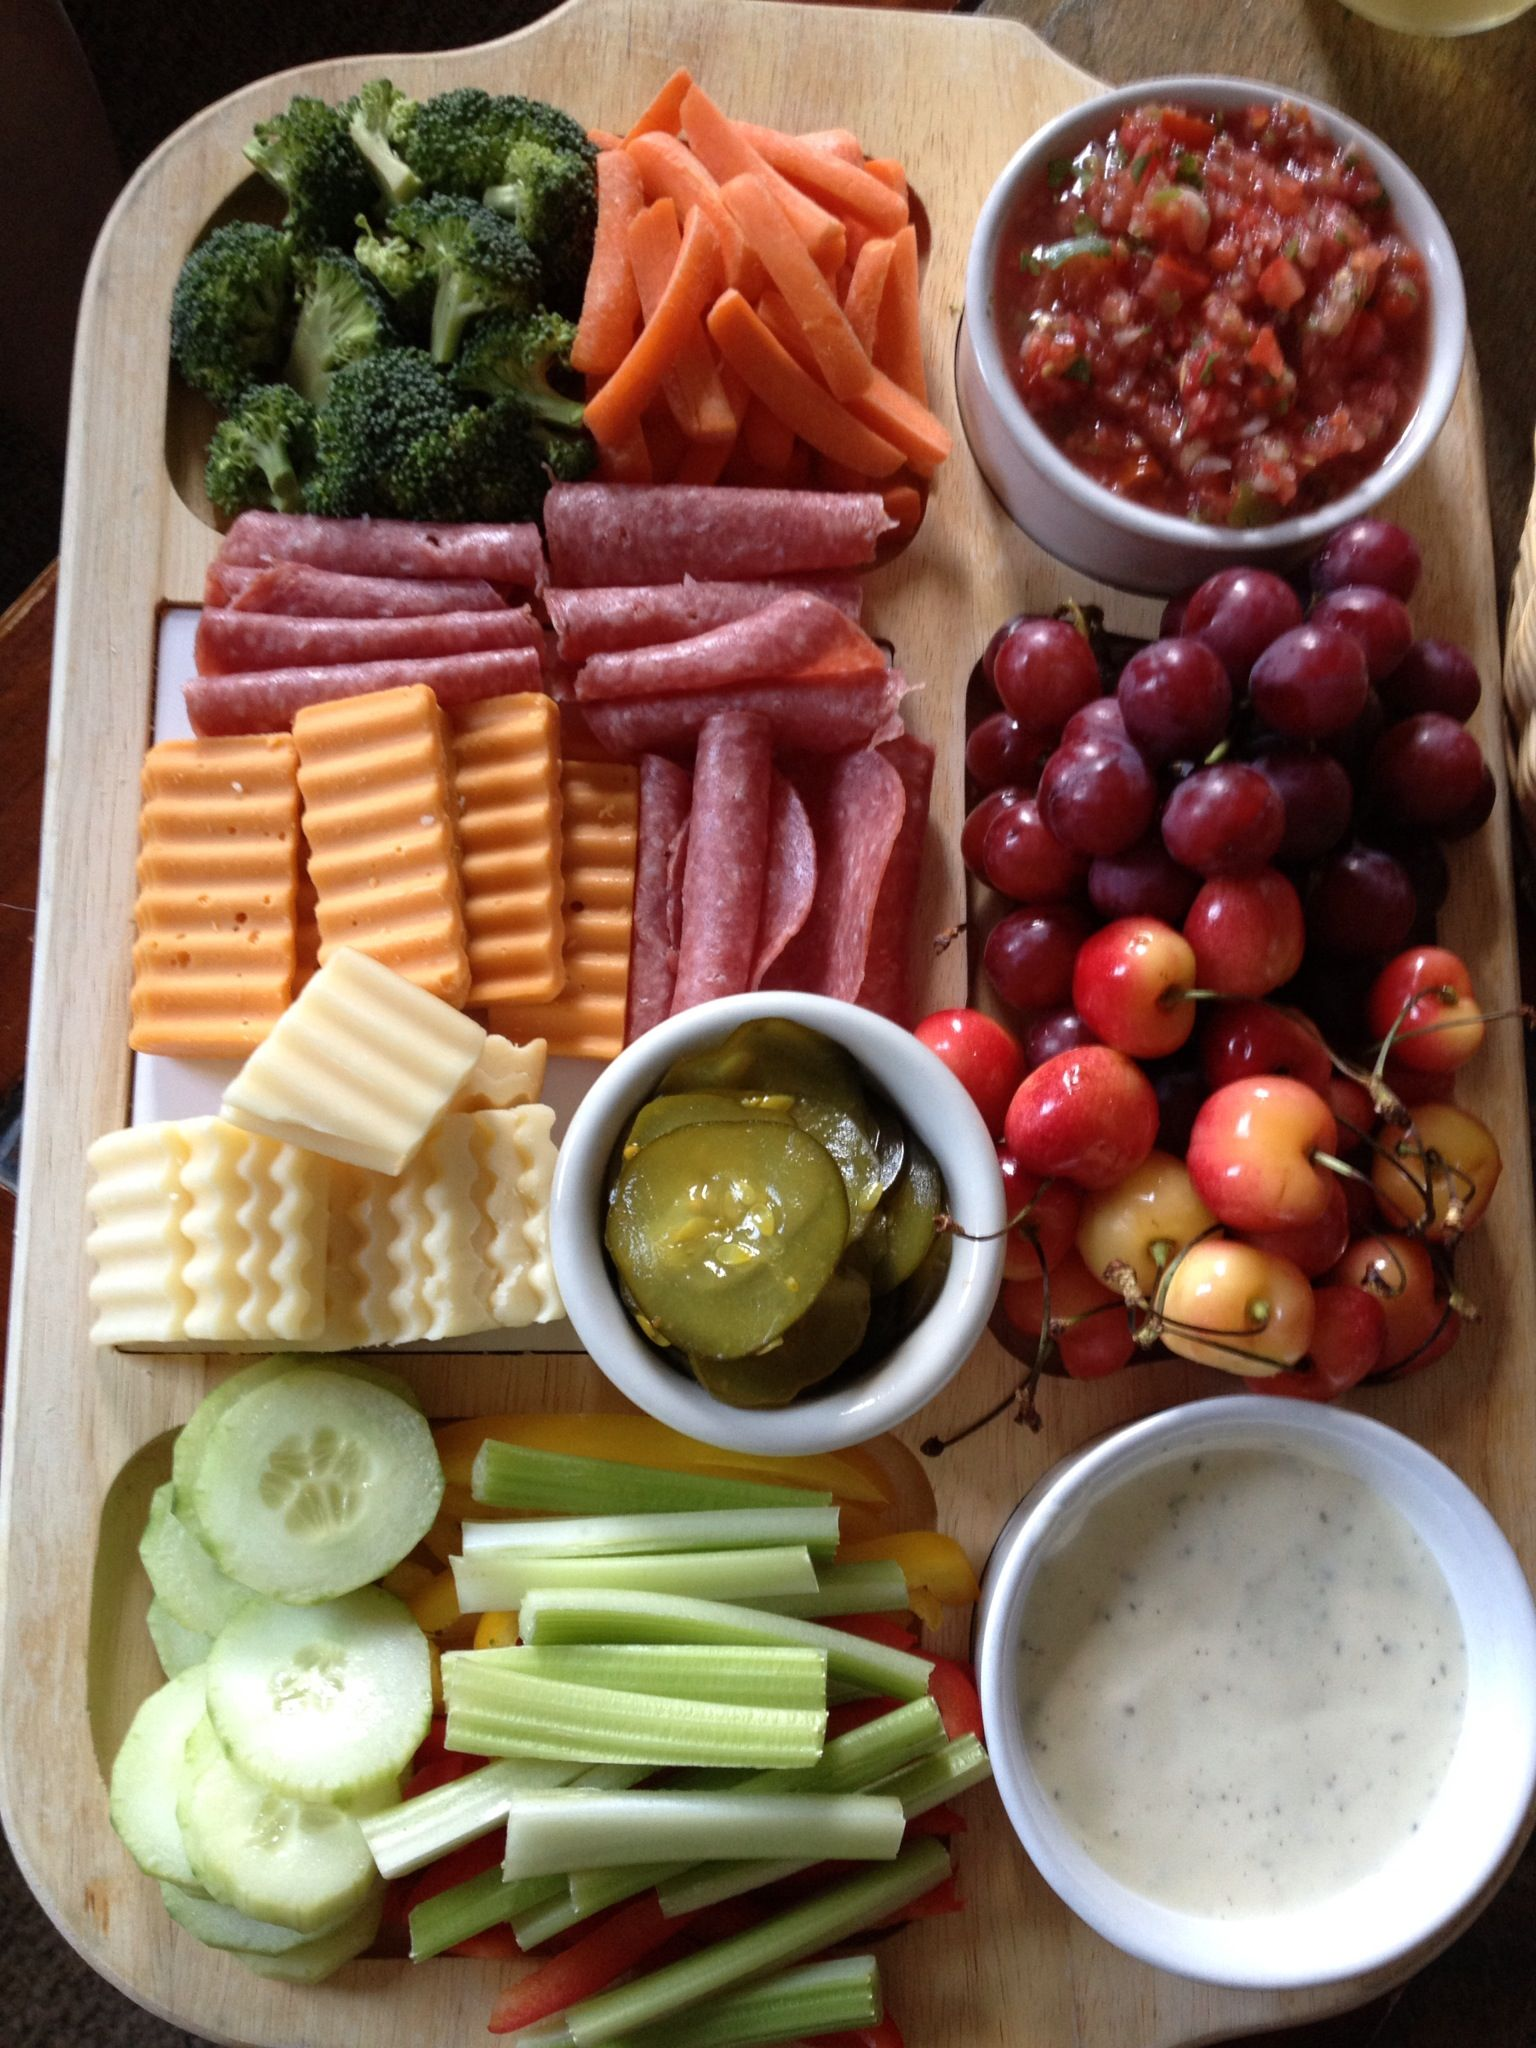 At home movie snacks with a glass of wine ) Healthy